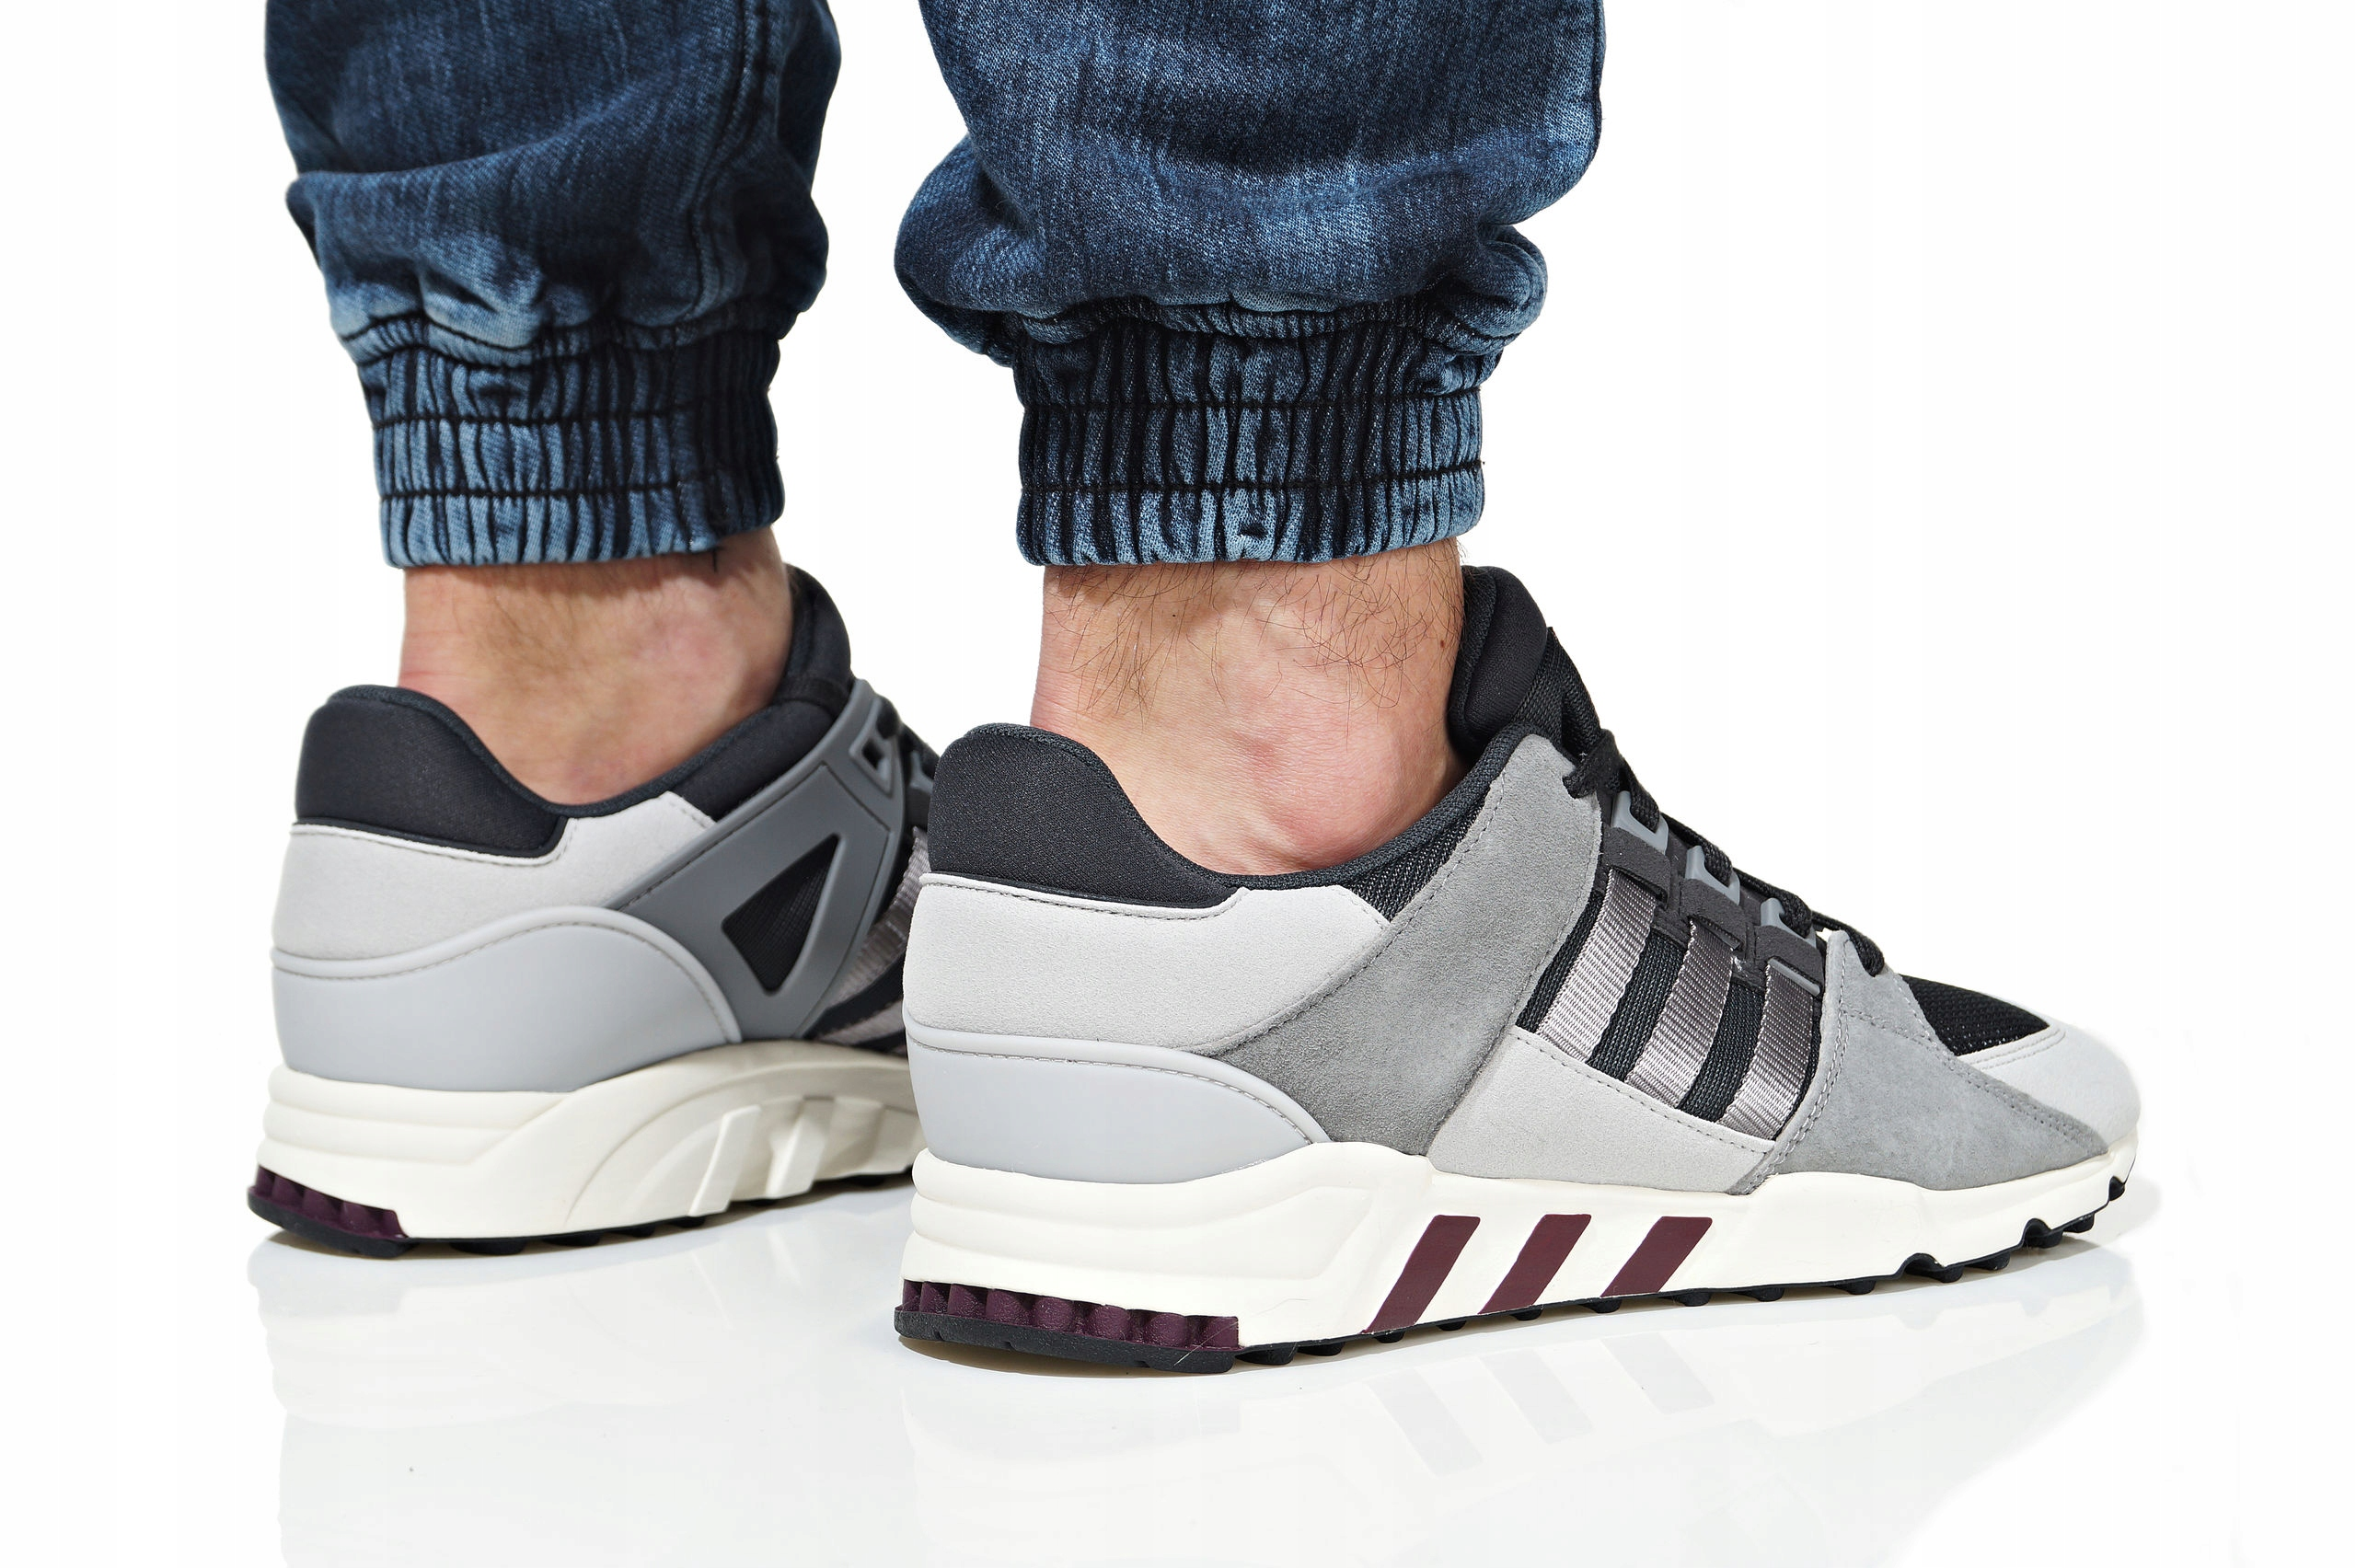 new products 8e198 0882a BUTY ADIDAS MĘSKIE EQT SUPPORT CQ2420 R. 44 23 (7313377282)